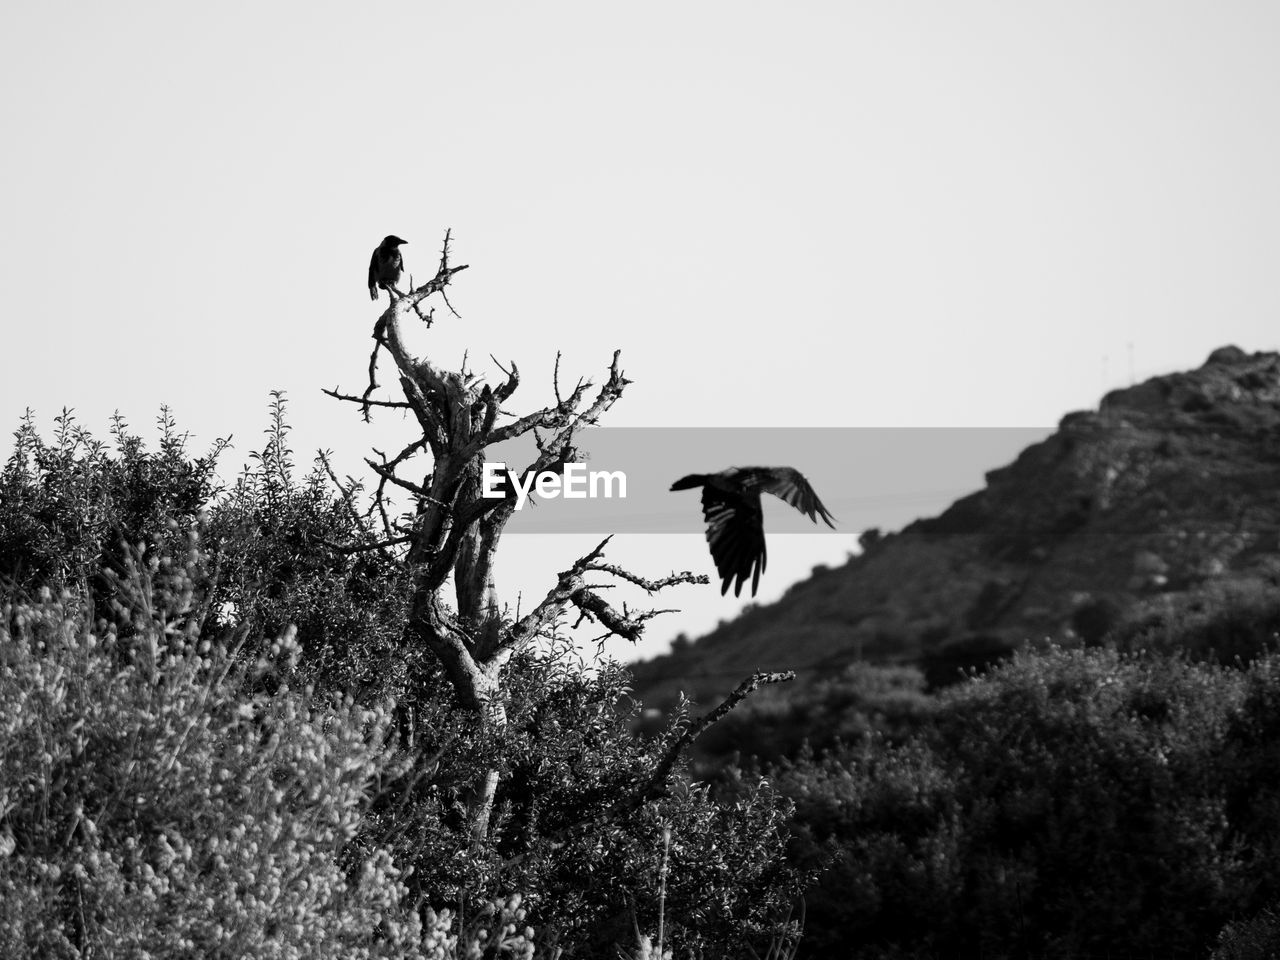 animal themes, animal, animal wildlife, sky, animals in the wild, vertebrate, bird, nature, plant, clear sky, perching, tree, day, no people, group of animals, two animals, outdoors, growth